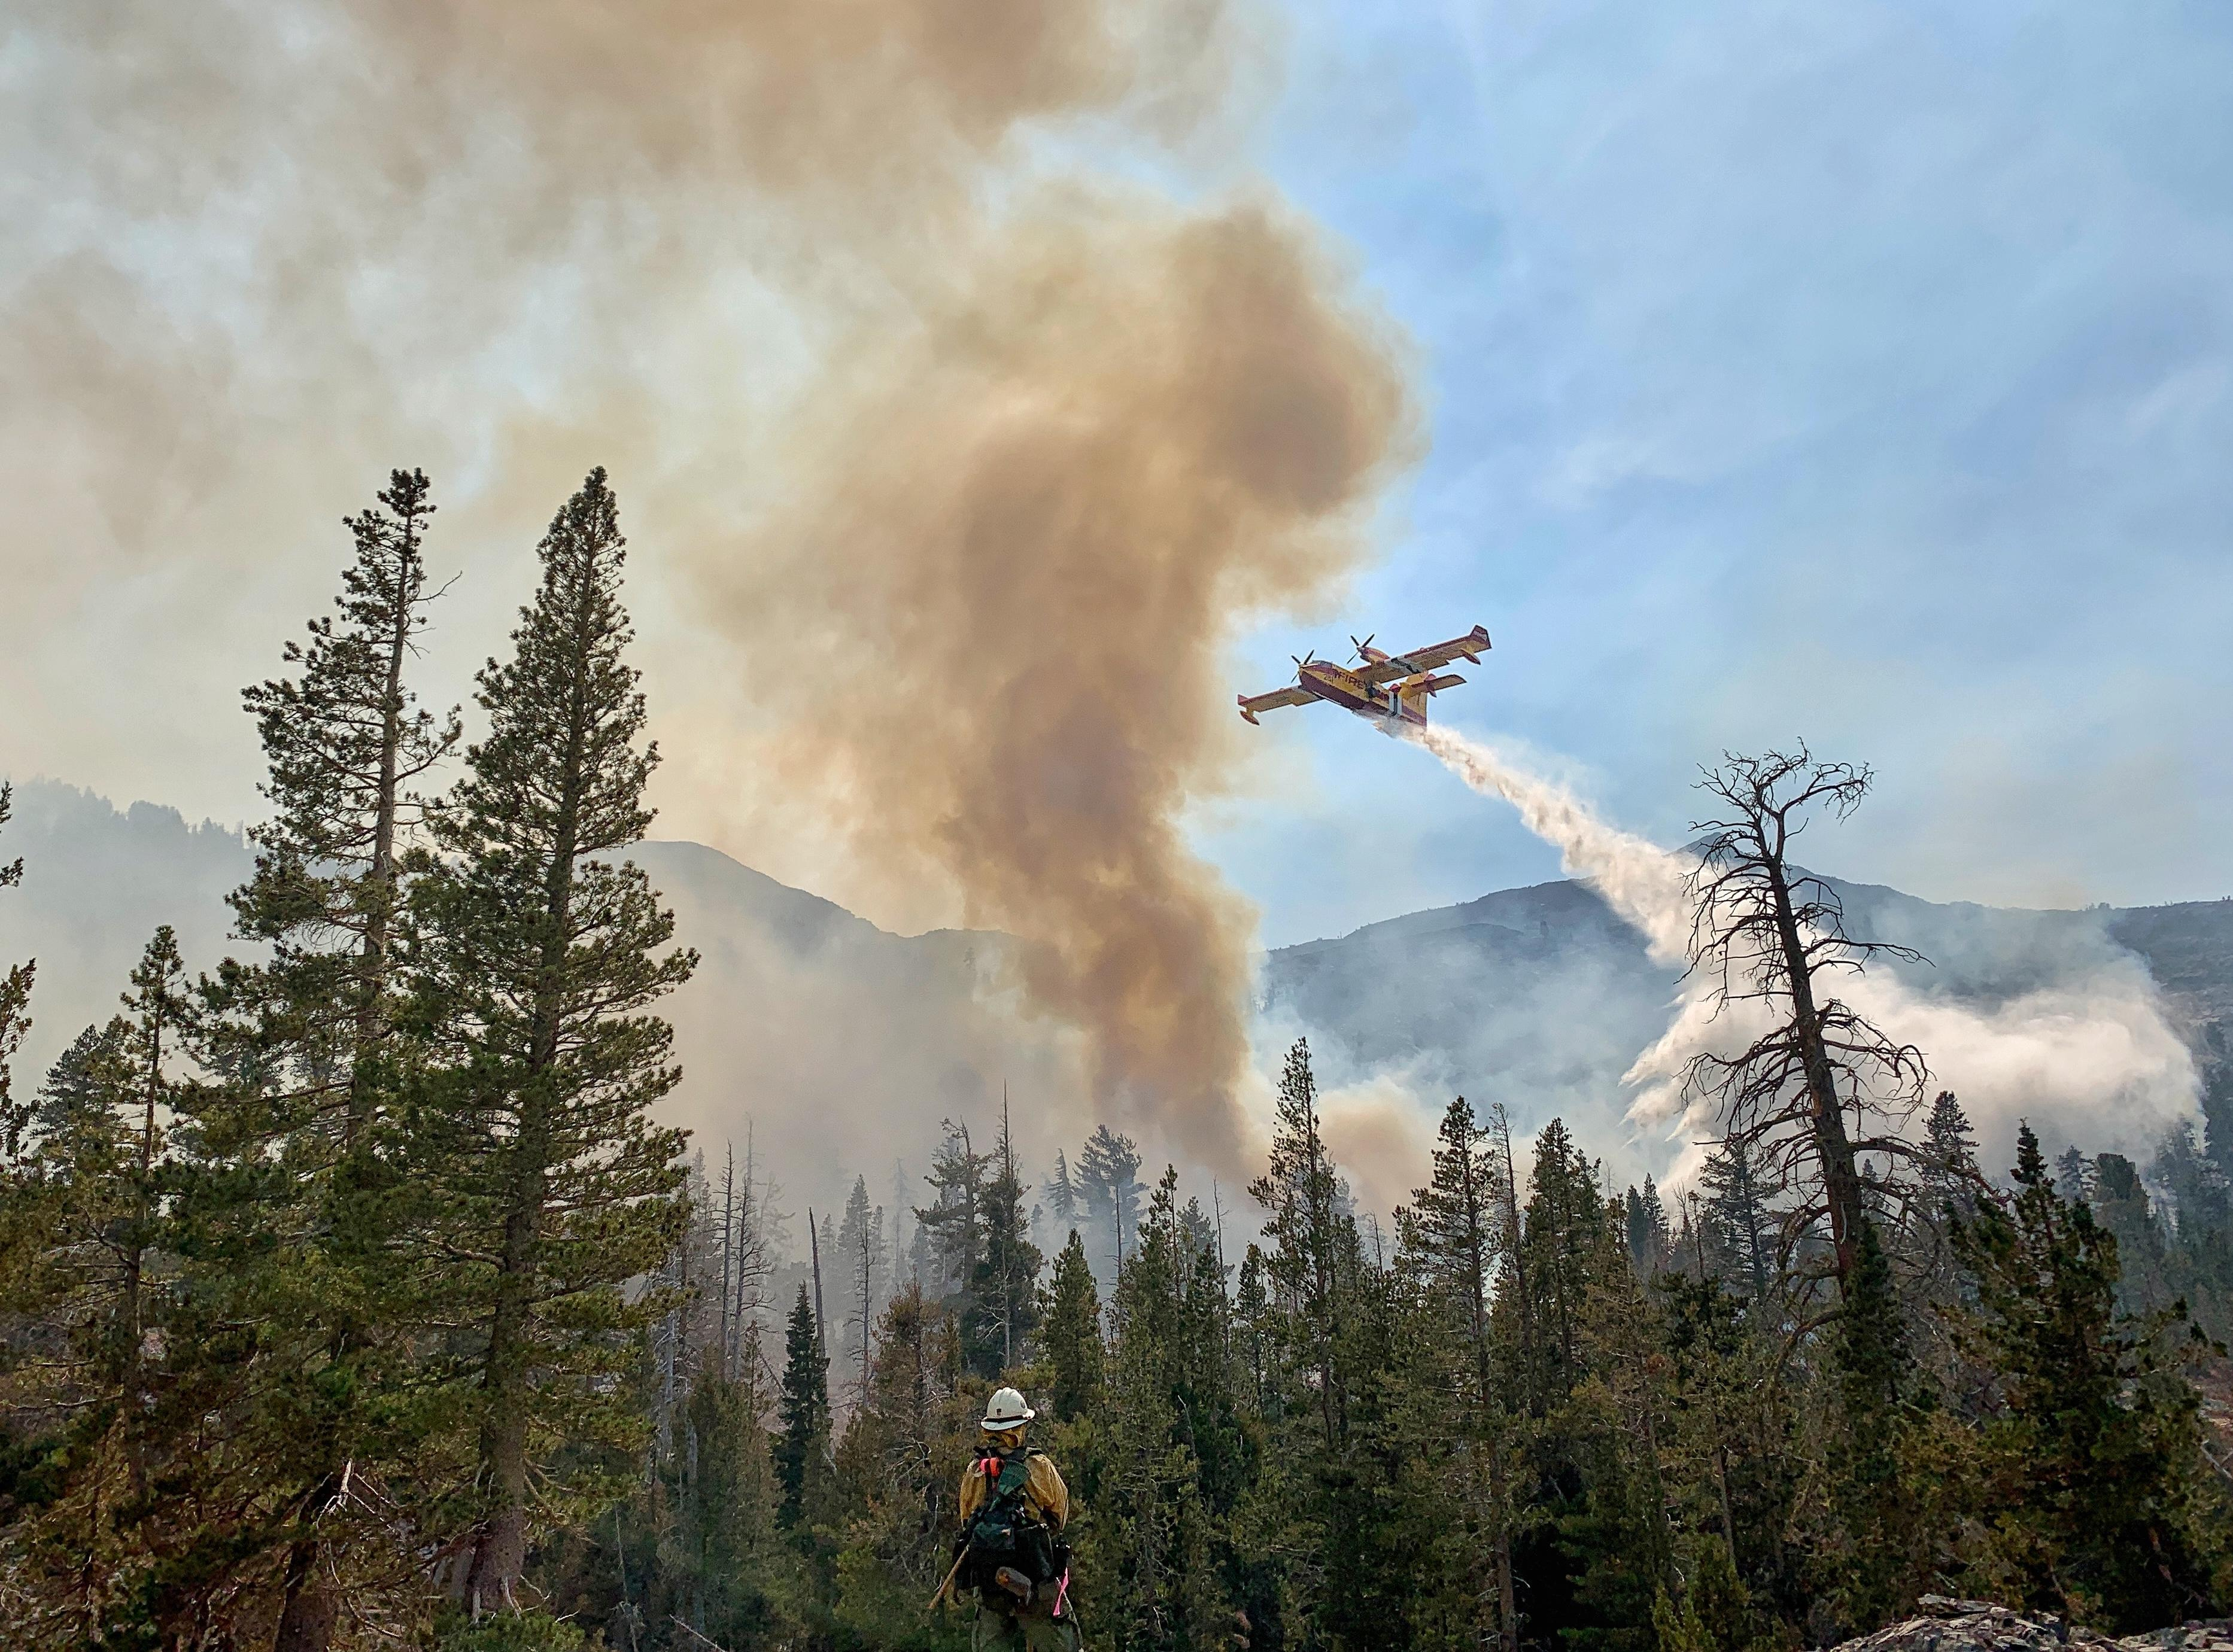 A large airplane flies overhead and drops water while a firefighter looks on from the ground.